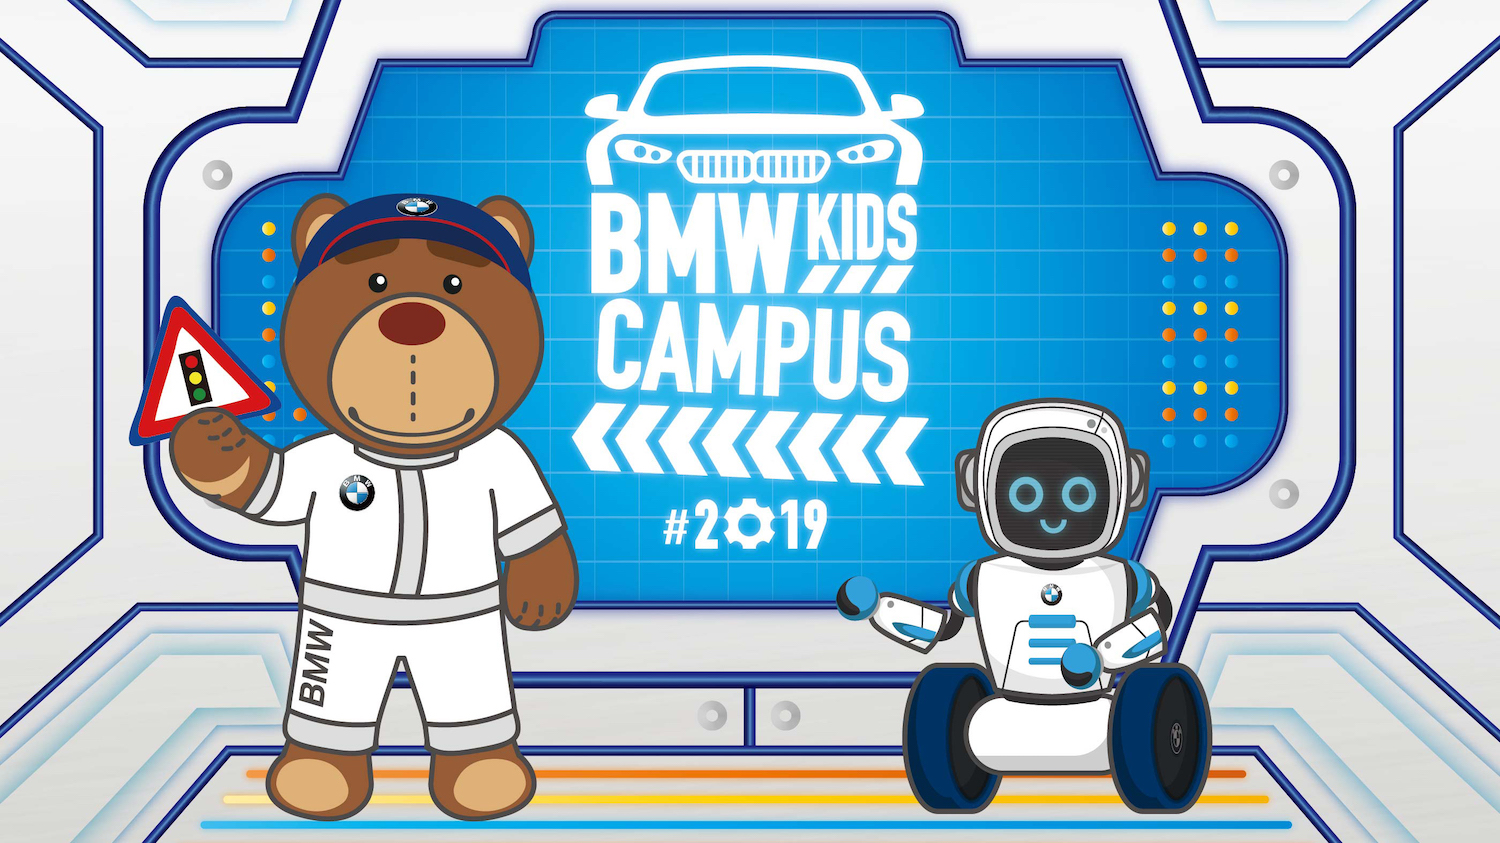 教育要趁早!「2019 BMW Kids Campus」開放報名